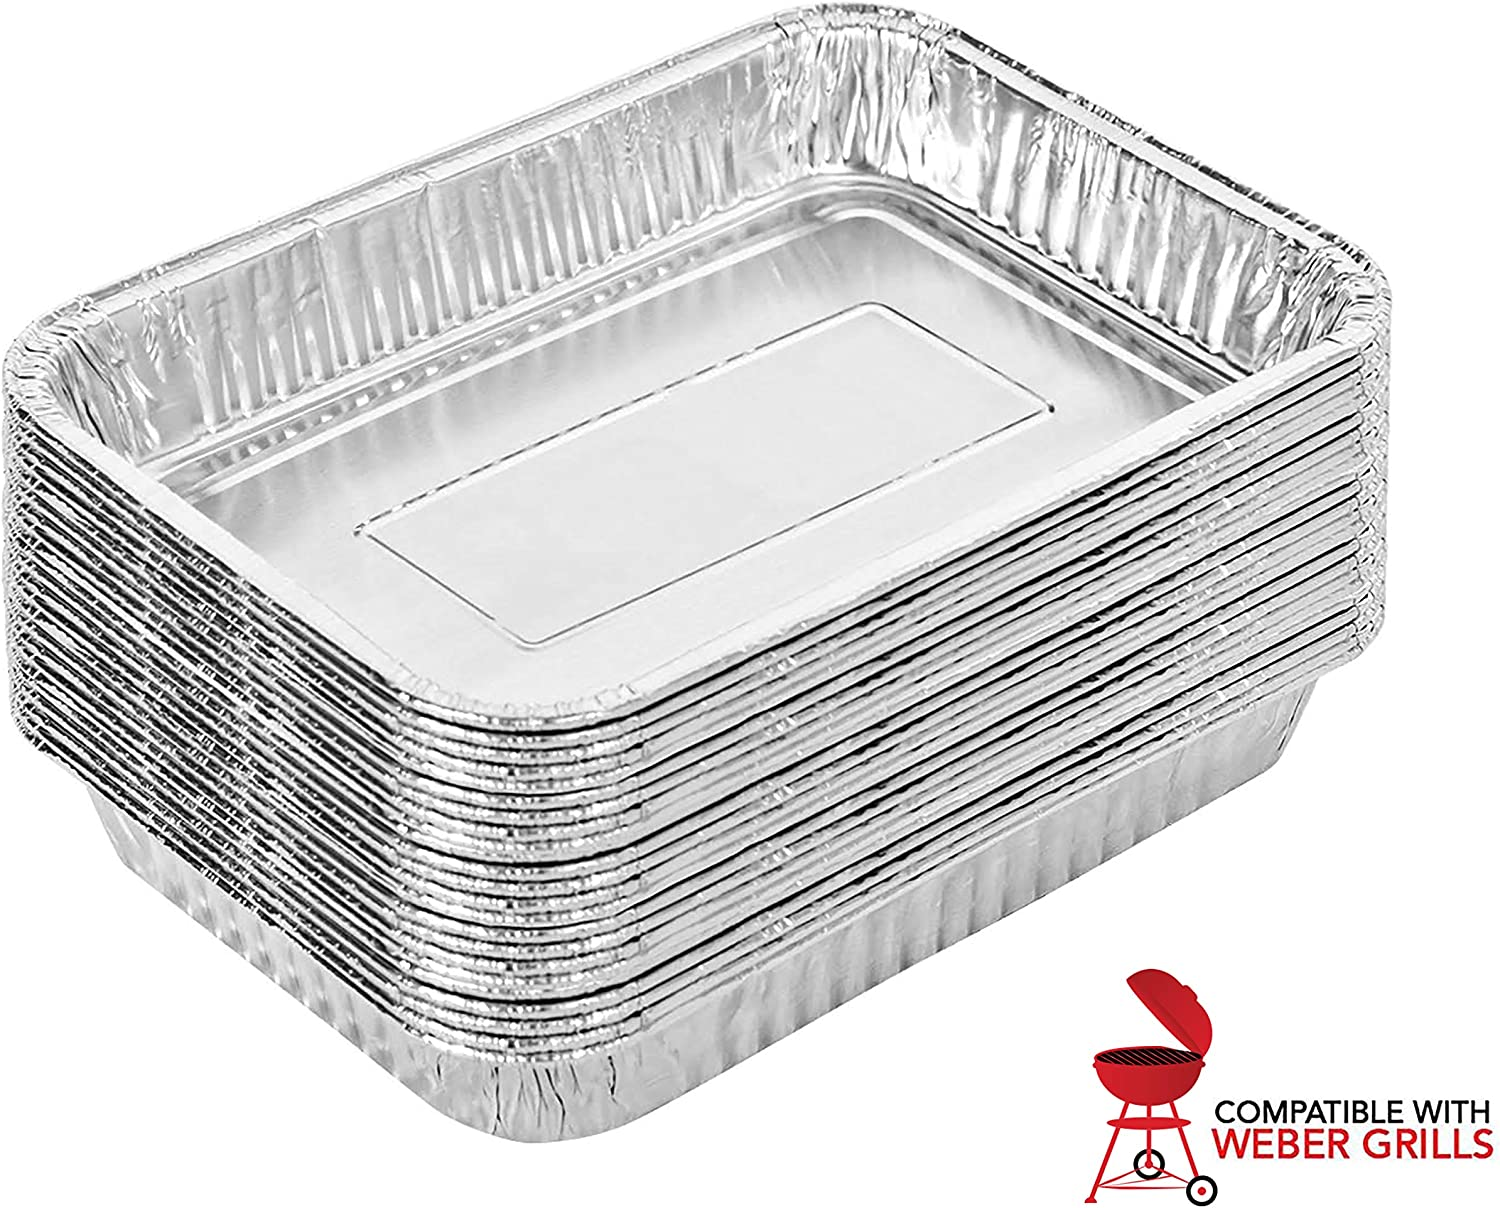 Stock Your Home Aluminum Drip Pan (25 Count) - Drip Pan Liners - Aluminum Drip Pans Compatible with Weber Grills - Disposable Drip Pan - Grill Grease Tray - BBQ Grease Pans - Disposable Oil Drip Pan